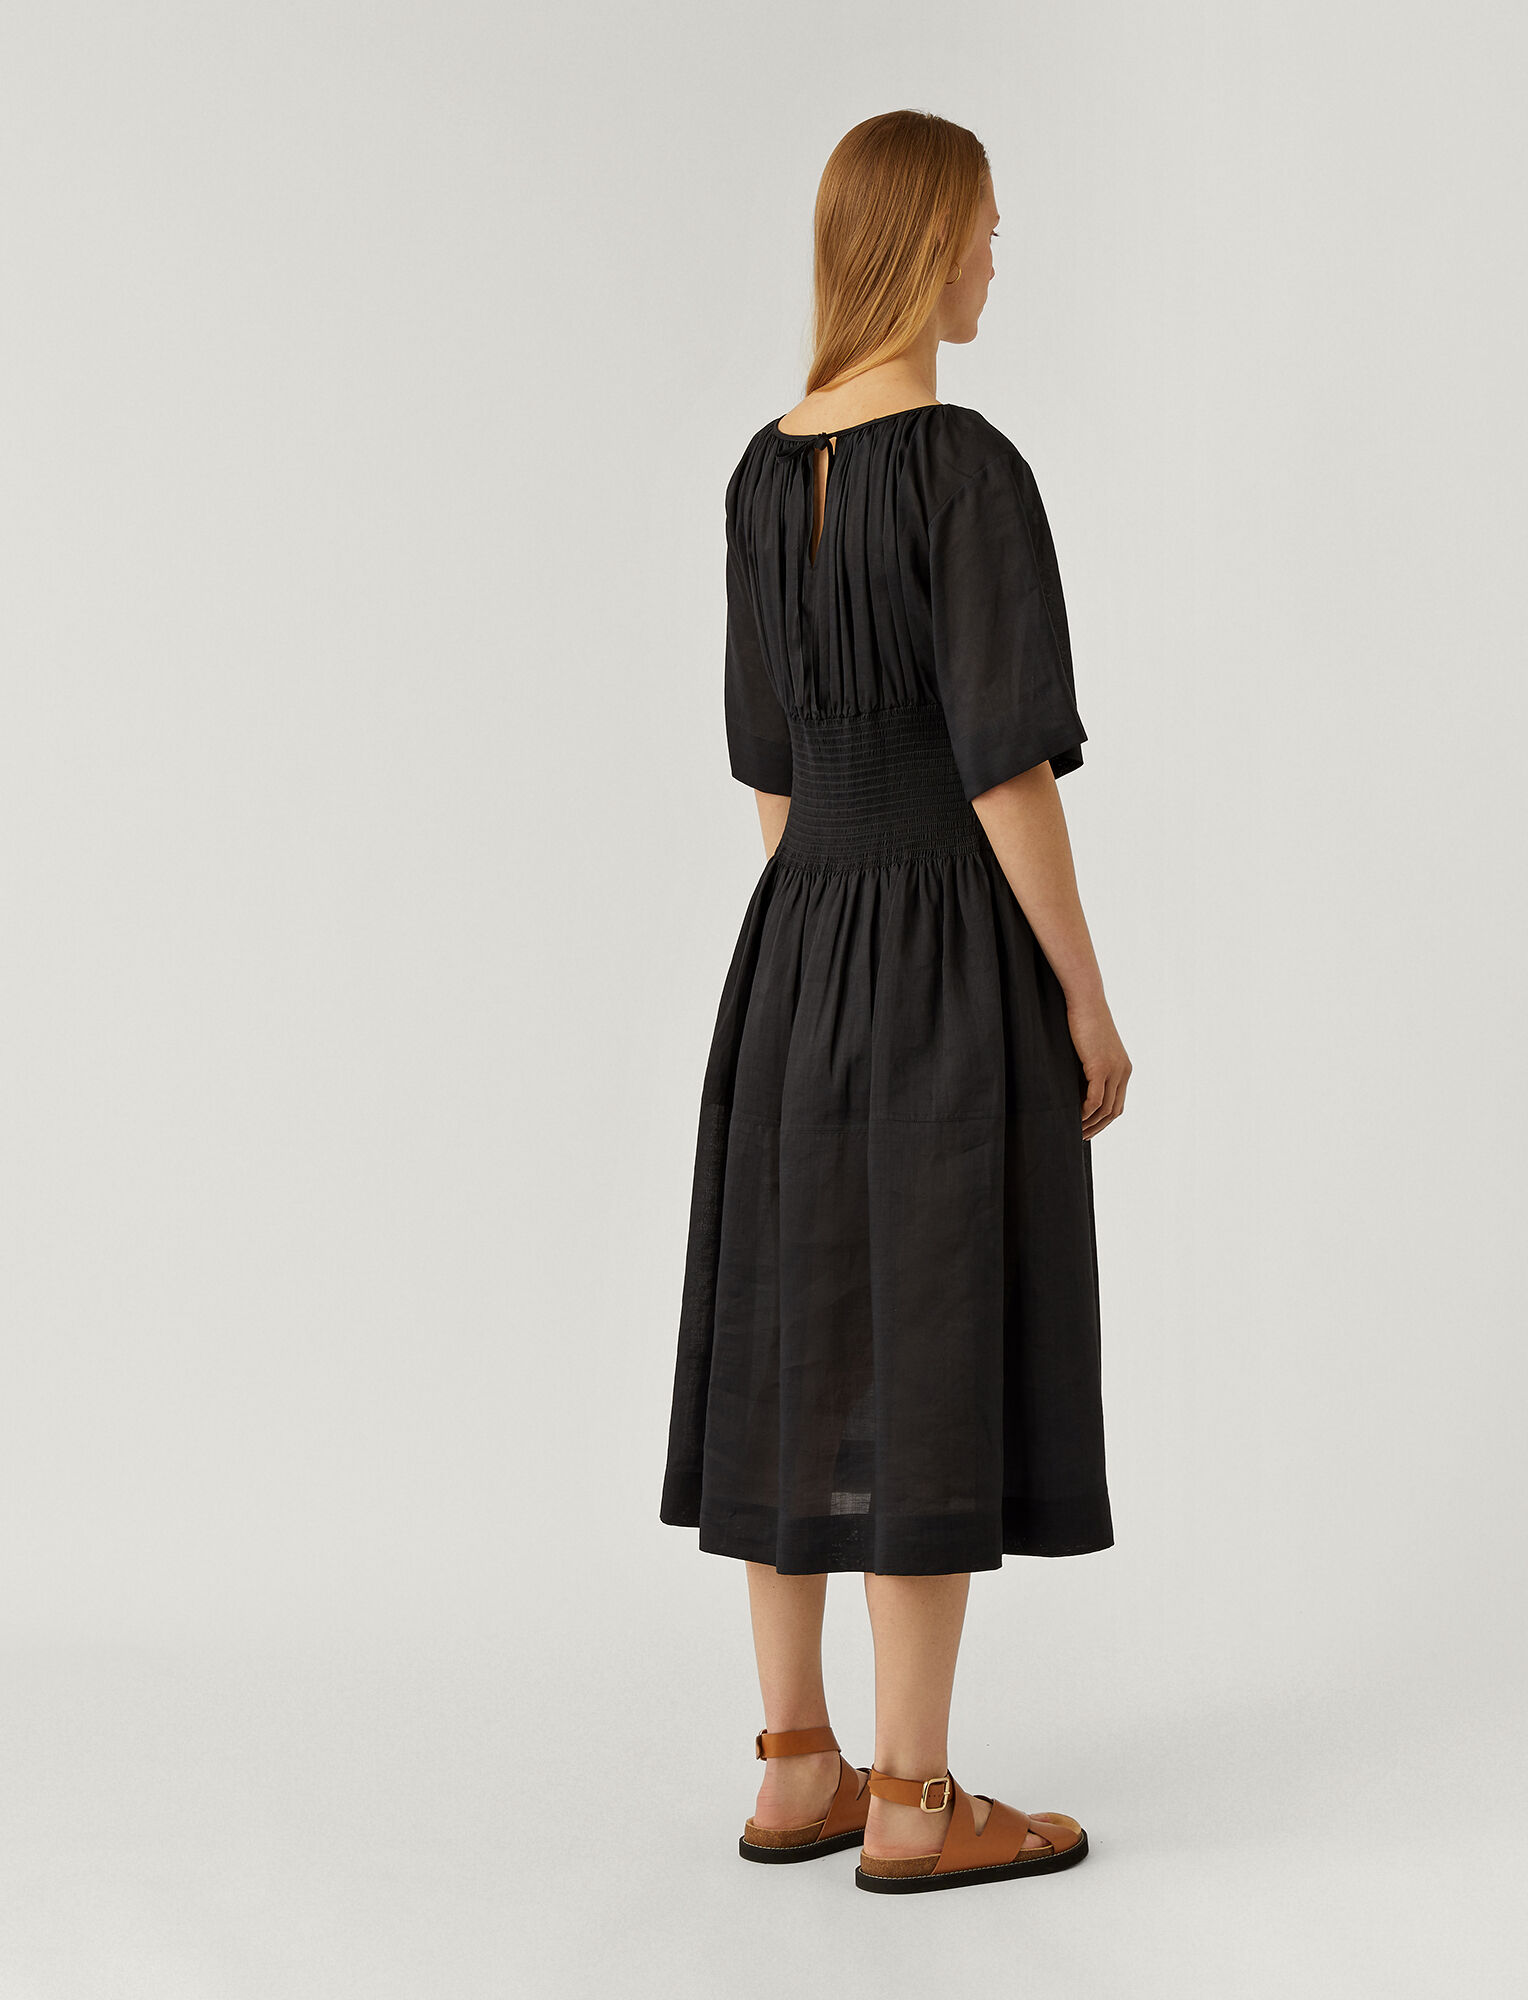 Joseph, Ramie Voile Daison Dress, in BLACK